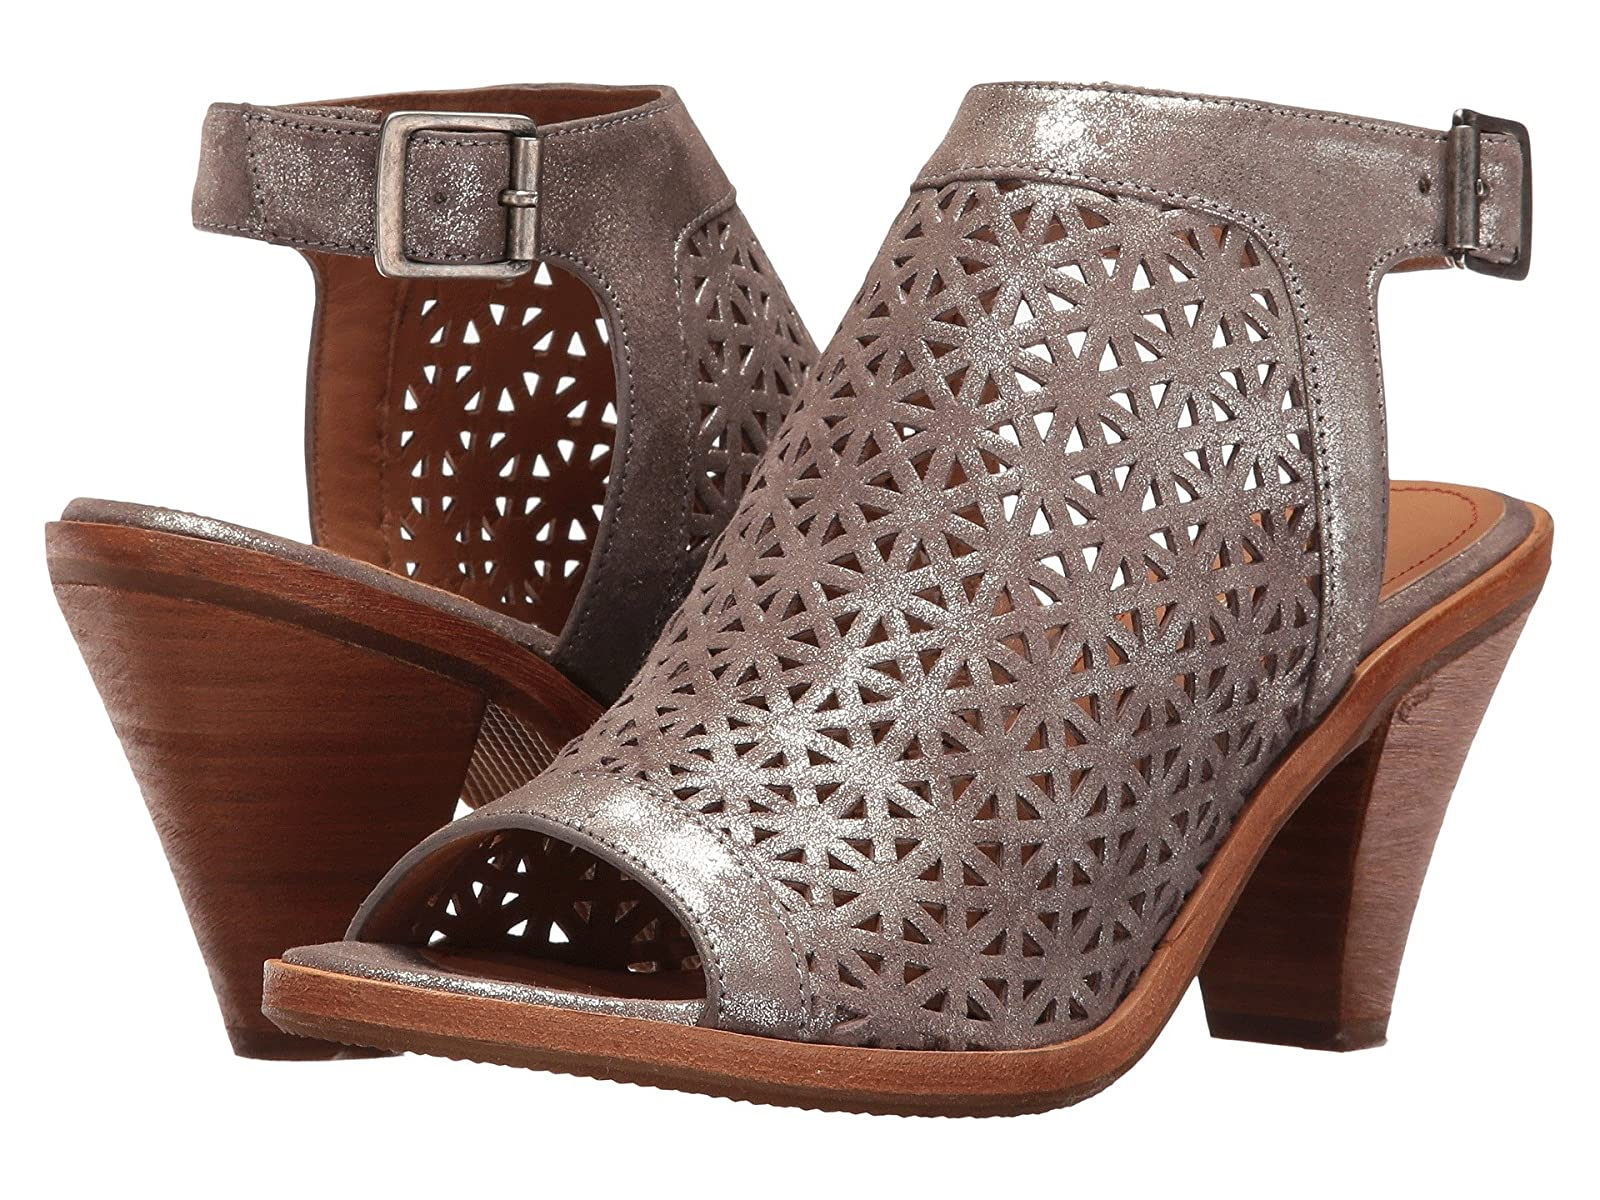 Trask PaisleyCheap and distinctive eye-catching shoes